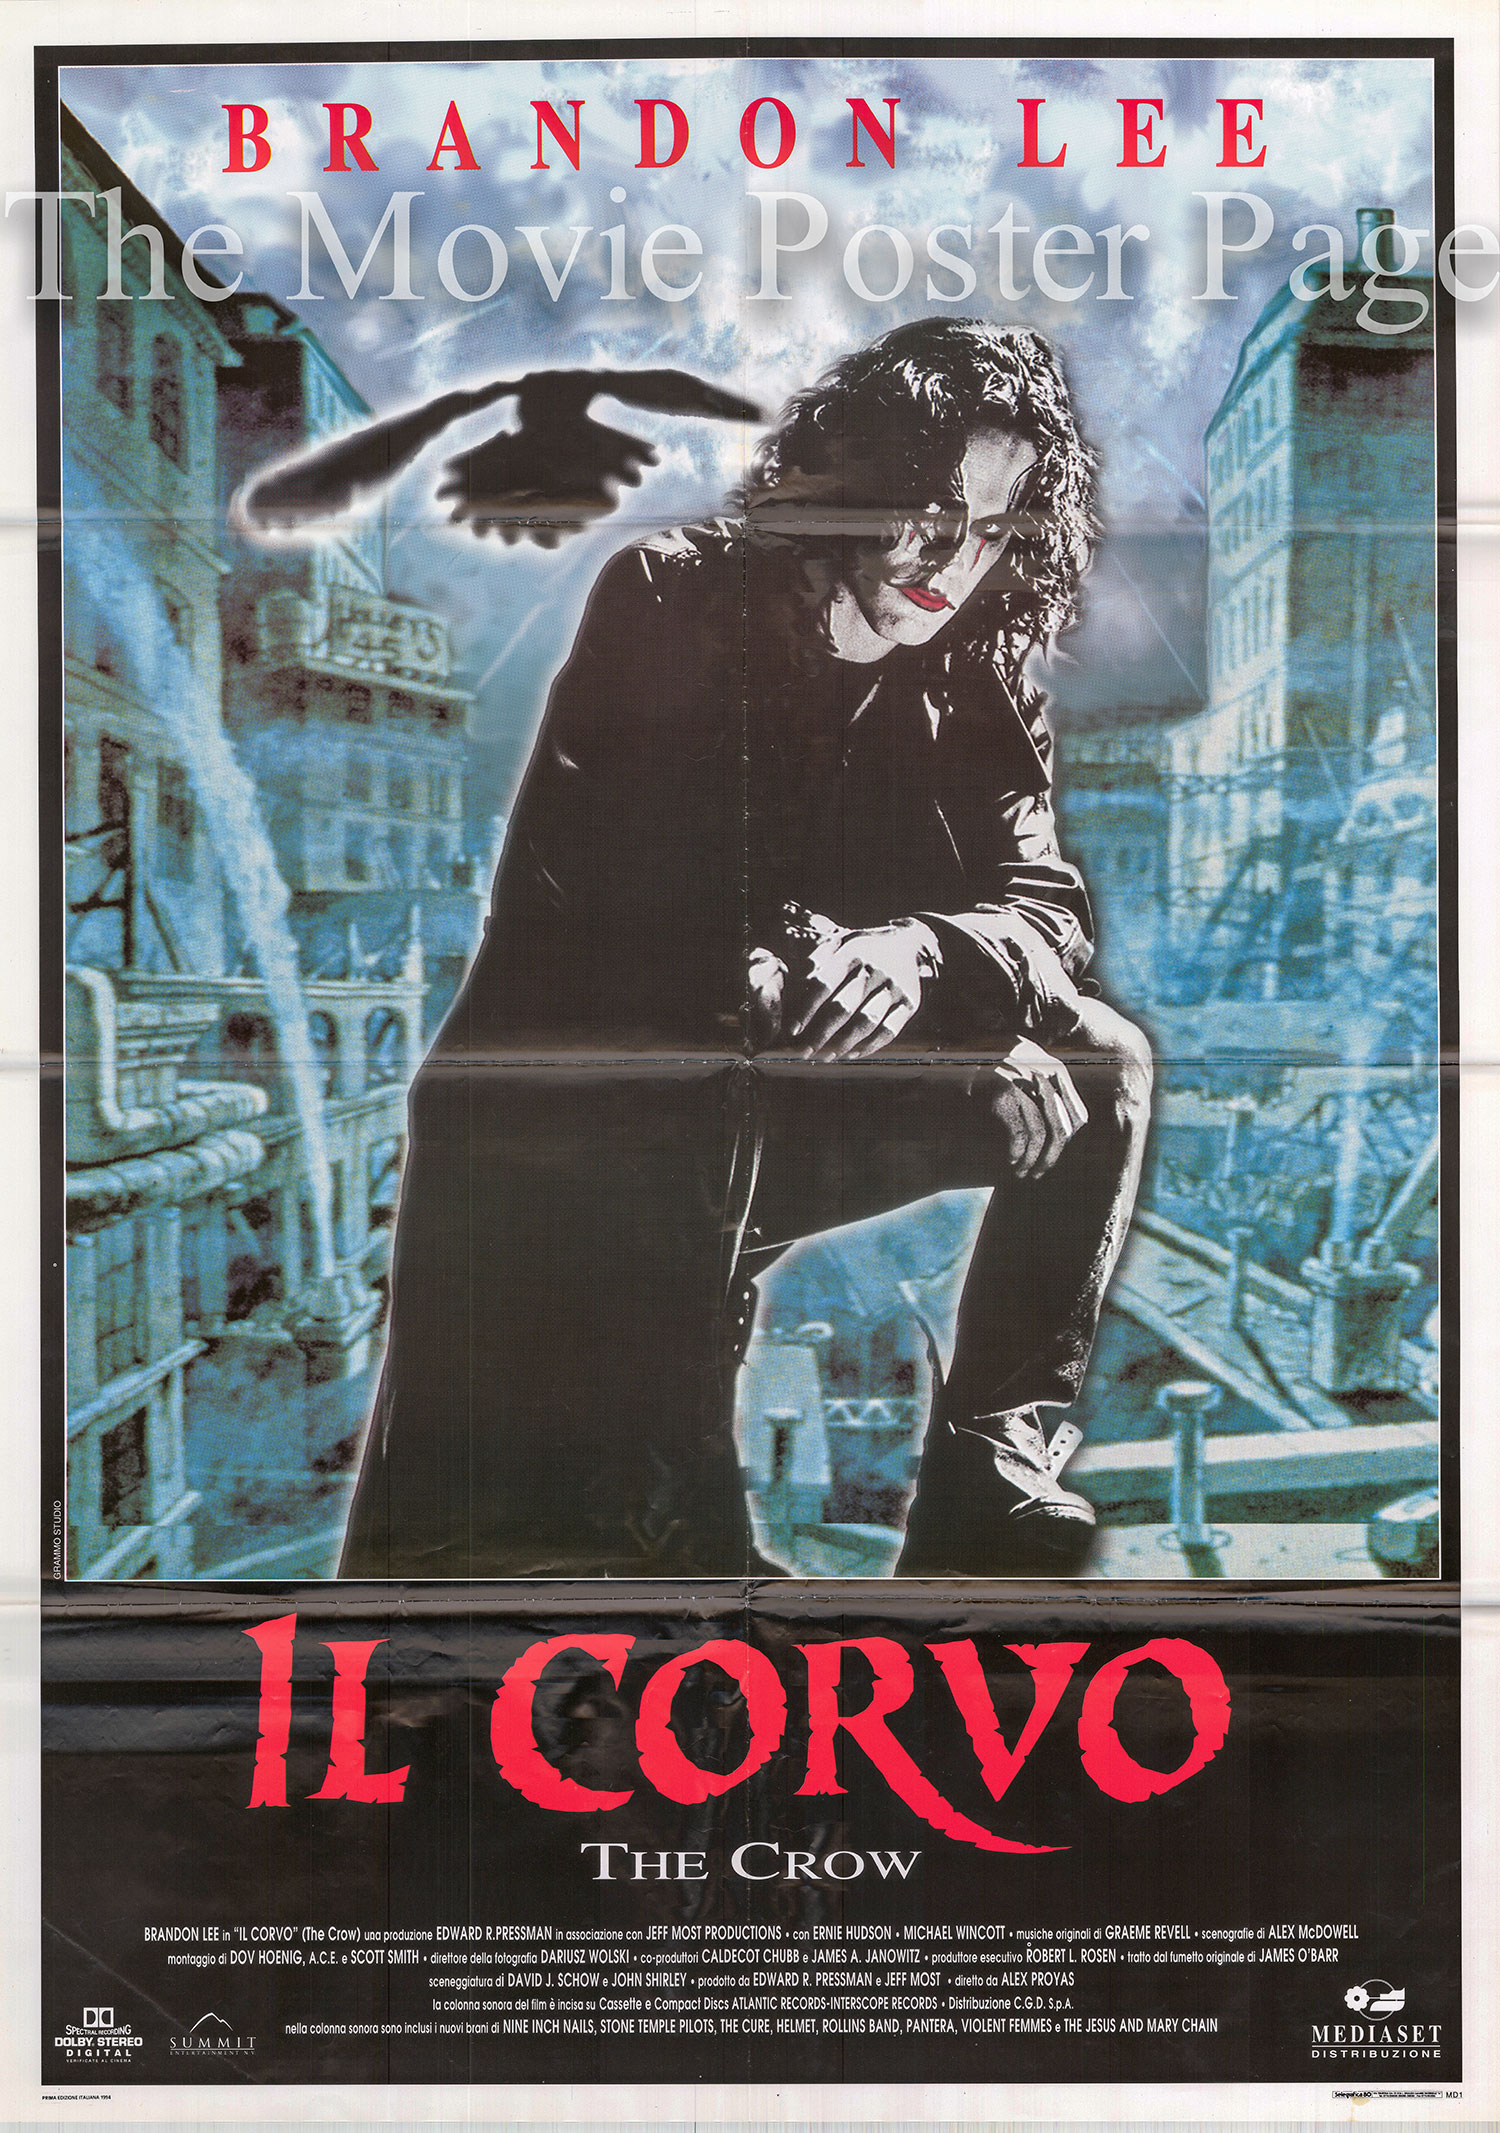 Pictured is an Italian two-sheet promotional poster for the 1994 Alex Proyas film The Crow starring Brandon Lee.